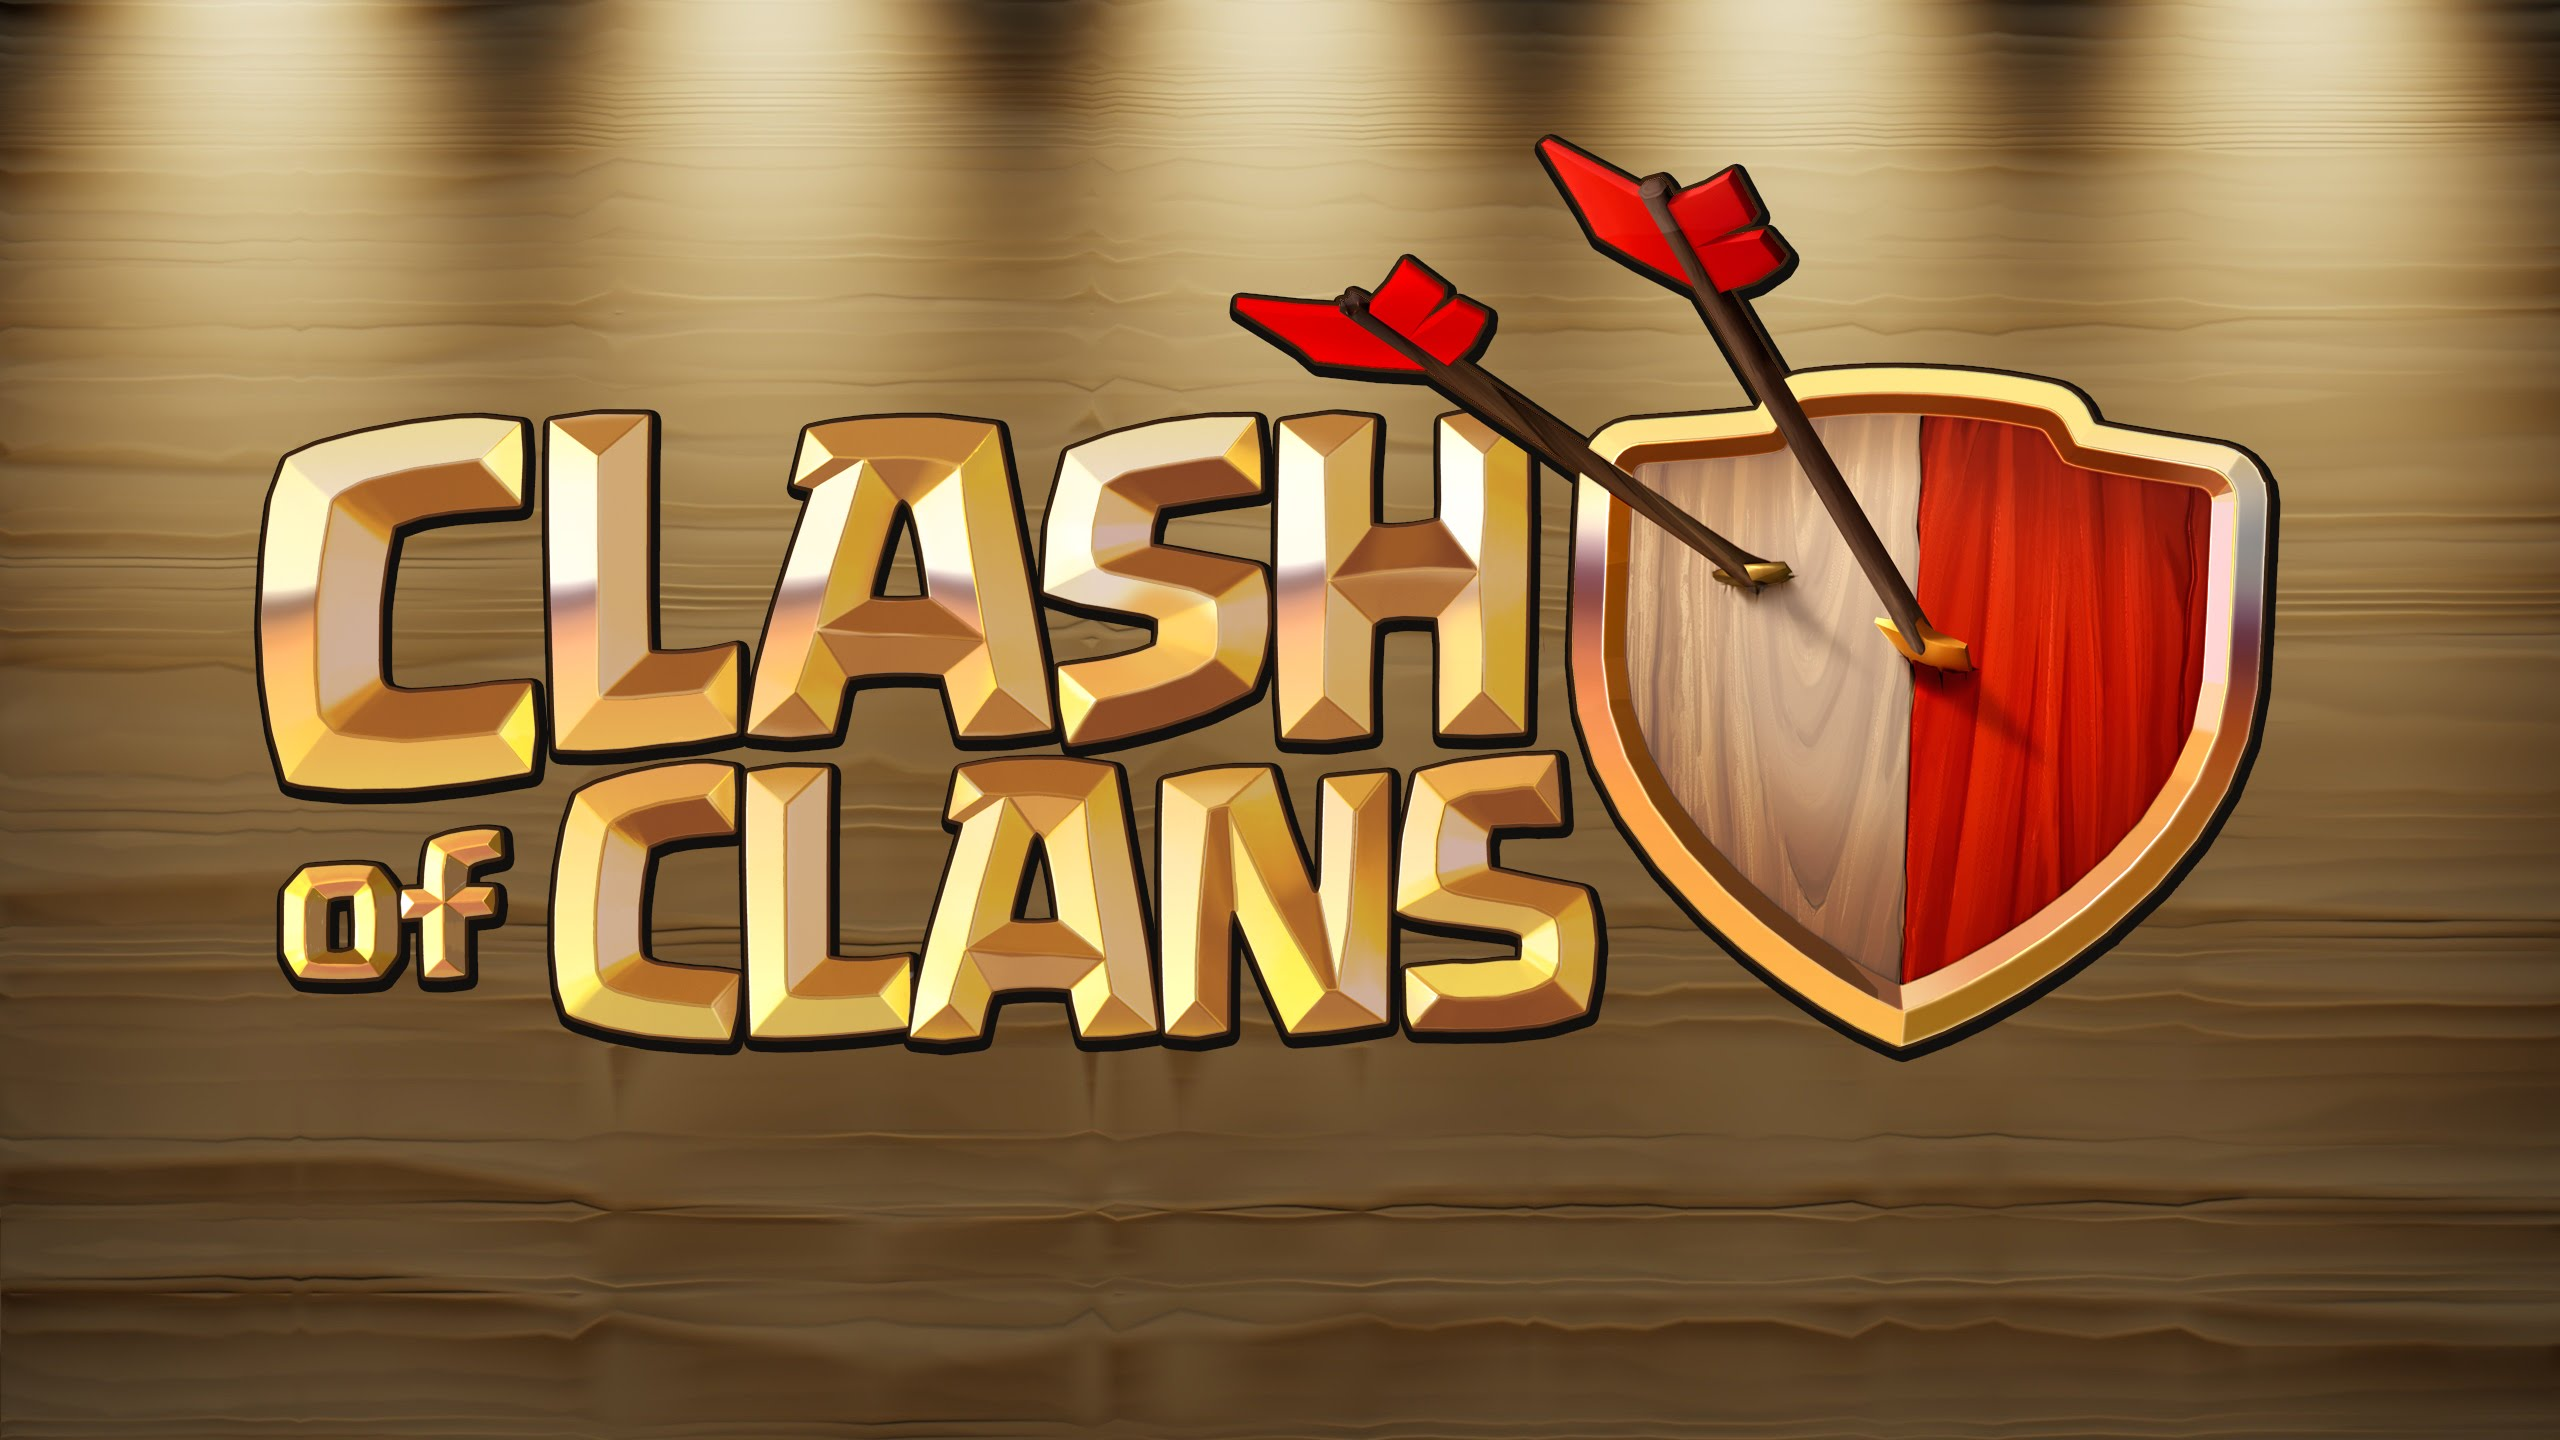 of clans wallpaper - photo #30